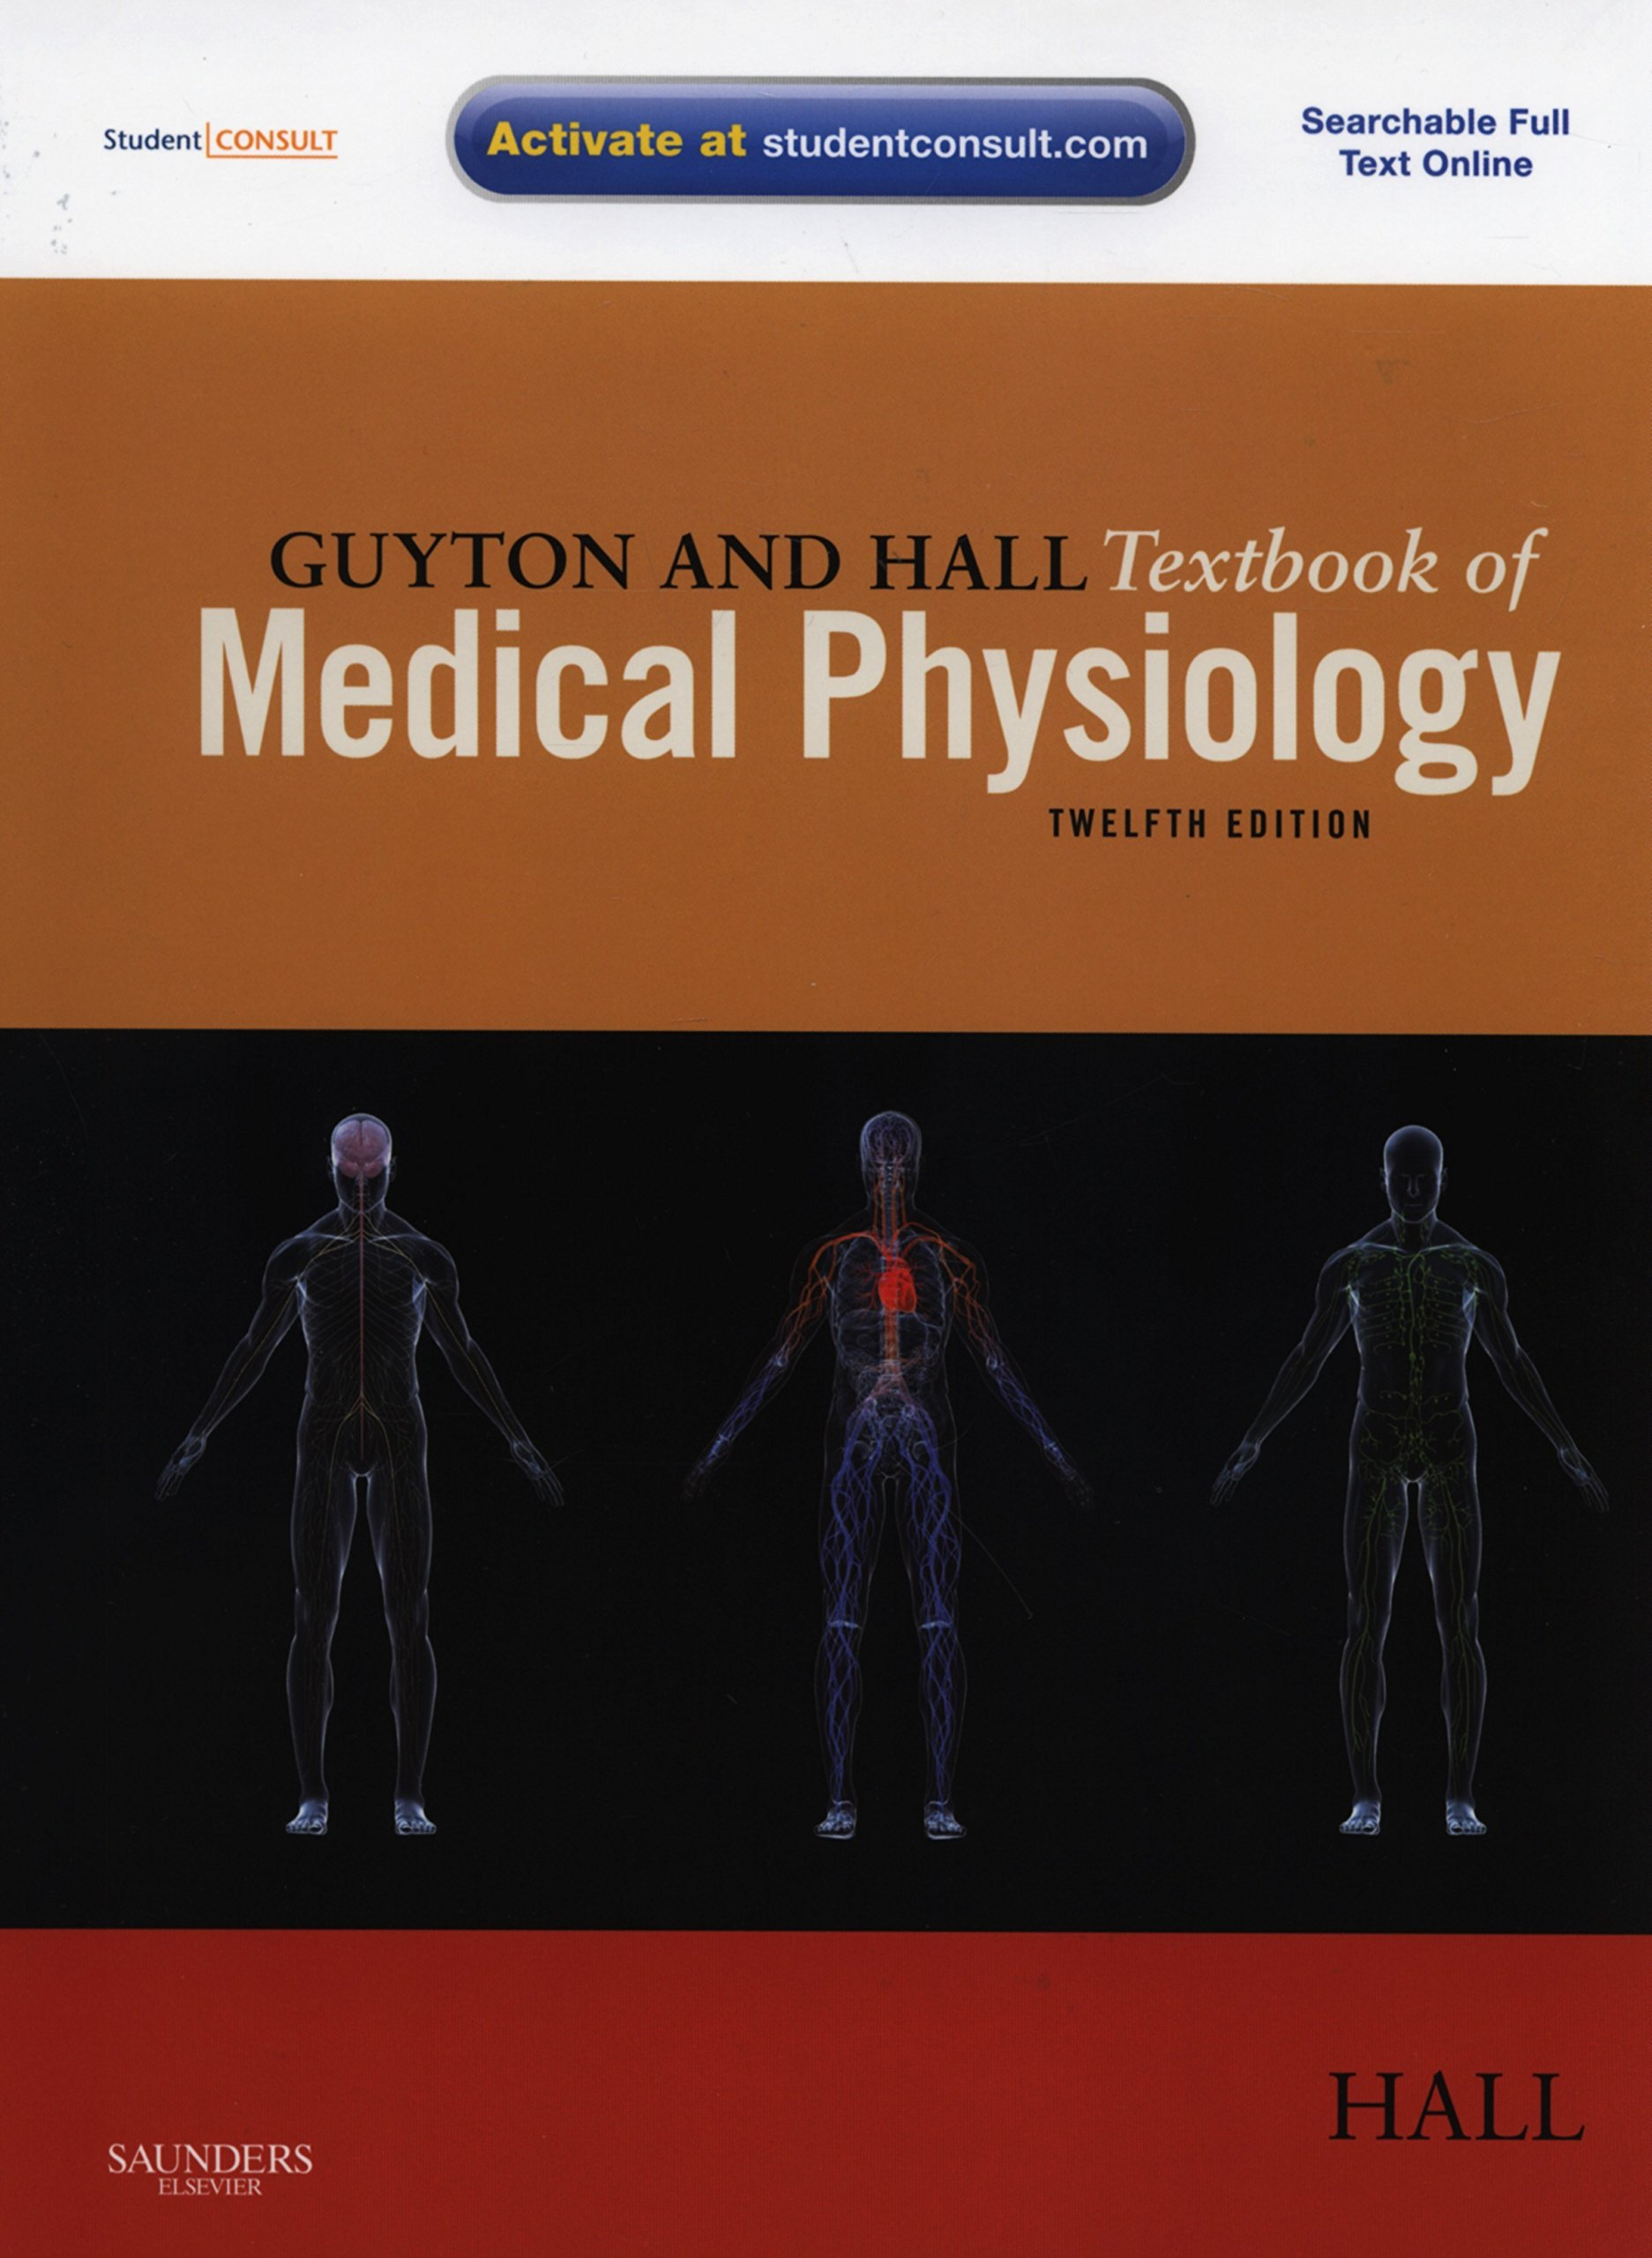 Guyton and hall textbook of medical physiology with student consult guyton and hall textbook of medical physiology with student consult online access john e hall 9781416045748 physiology amazon canada fandeluxe Choice Image